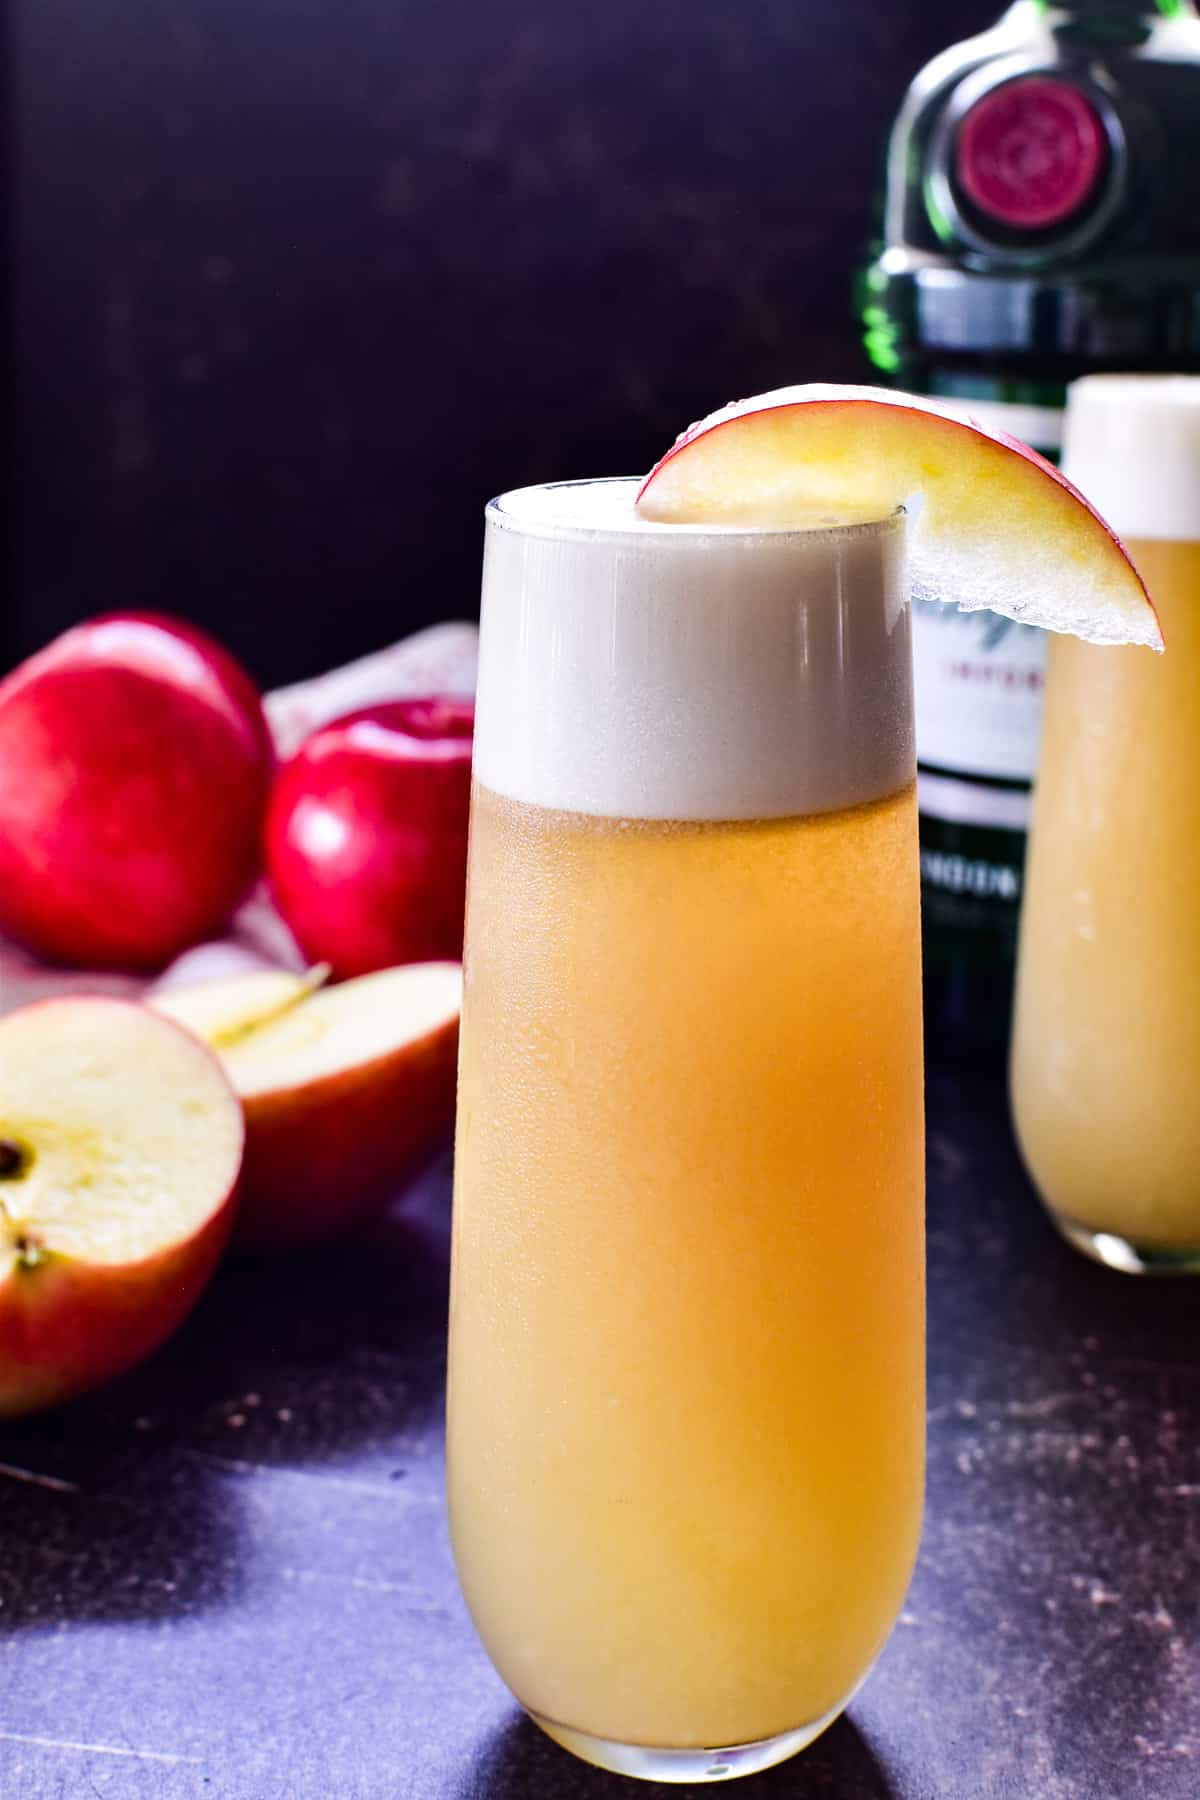 Apple Gin Fizz with an apple wedge